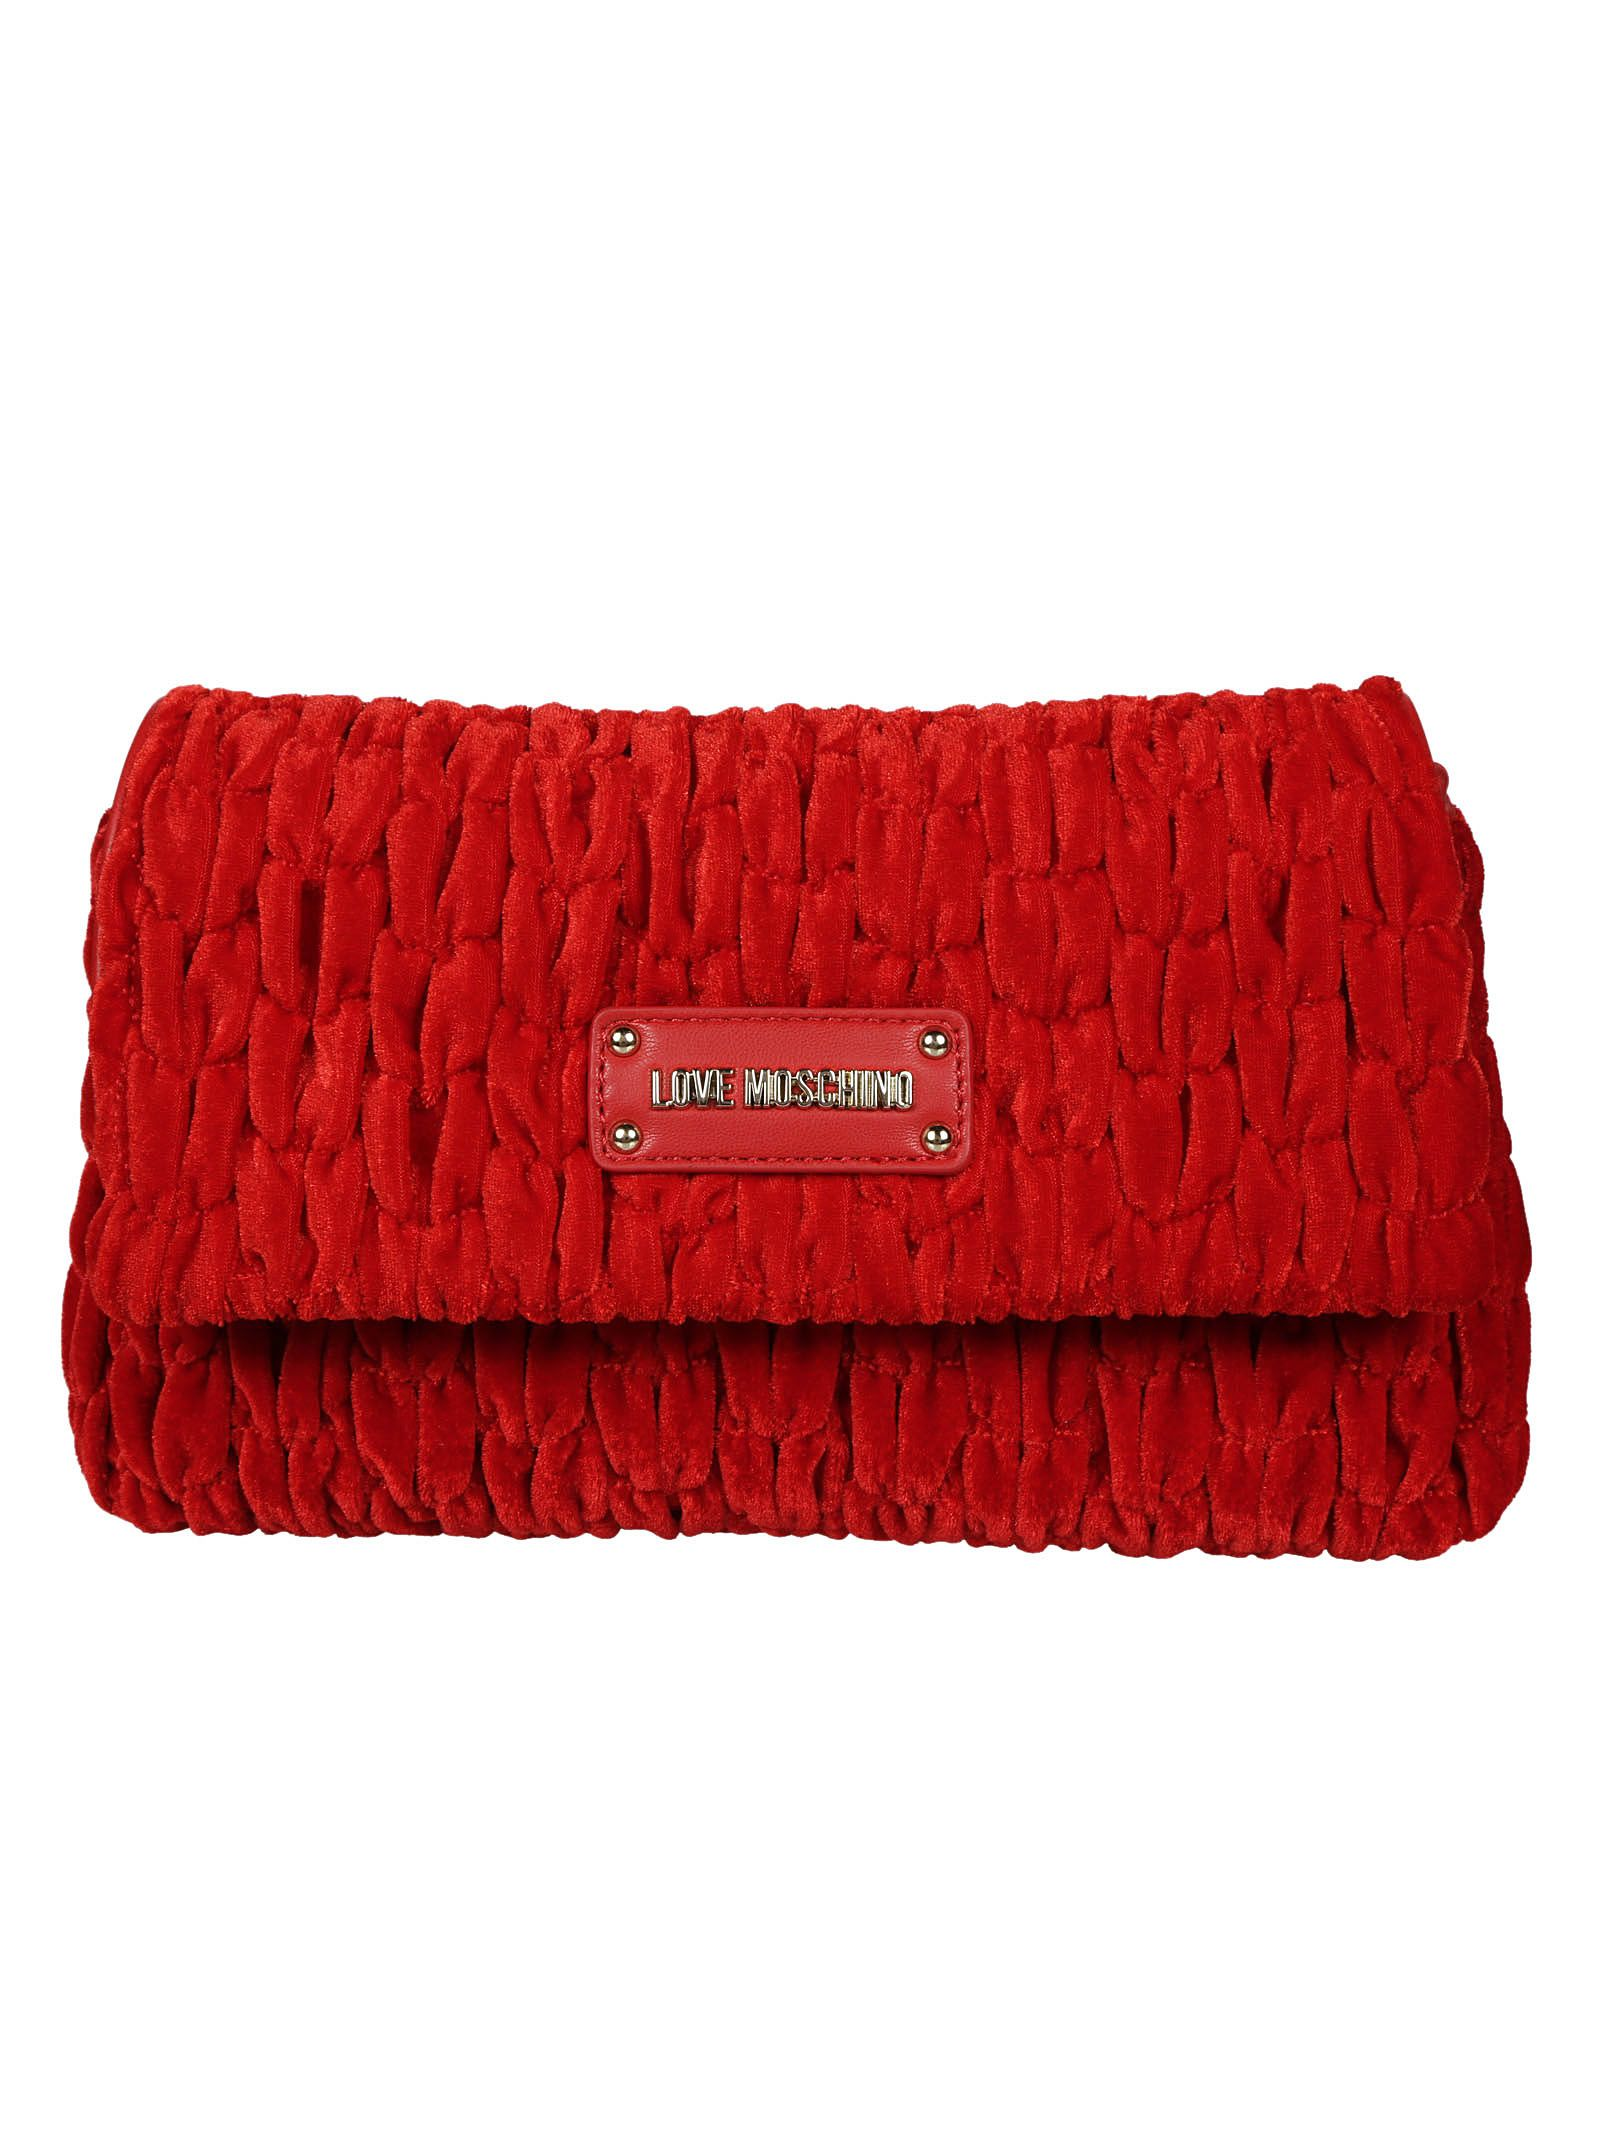 Love Moschino Textured Shoulder Bag